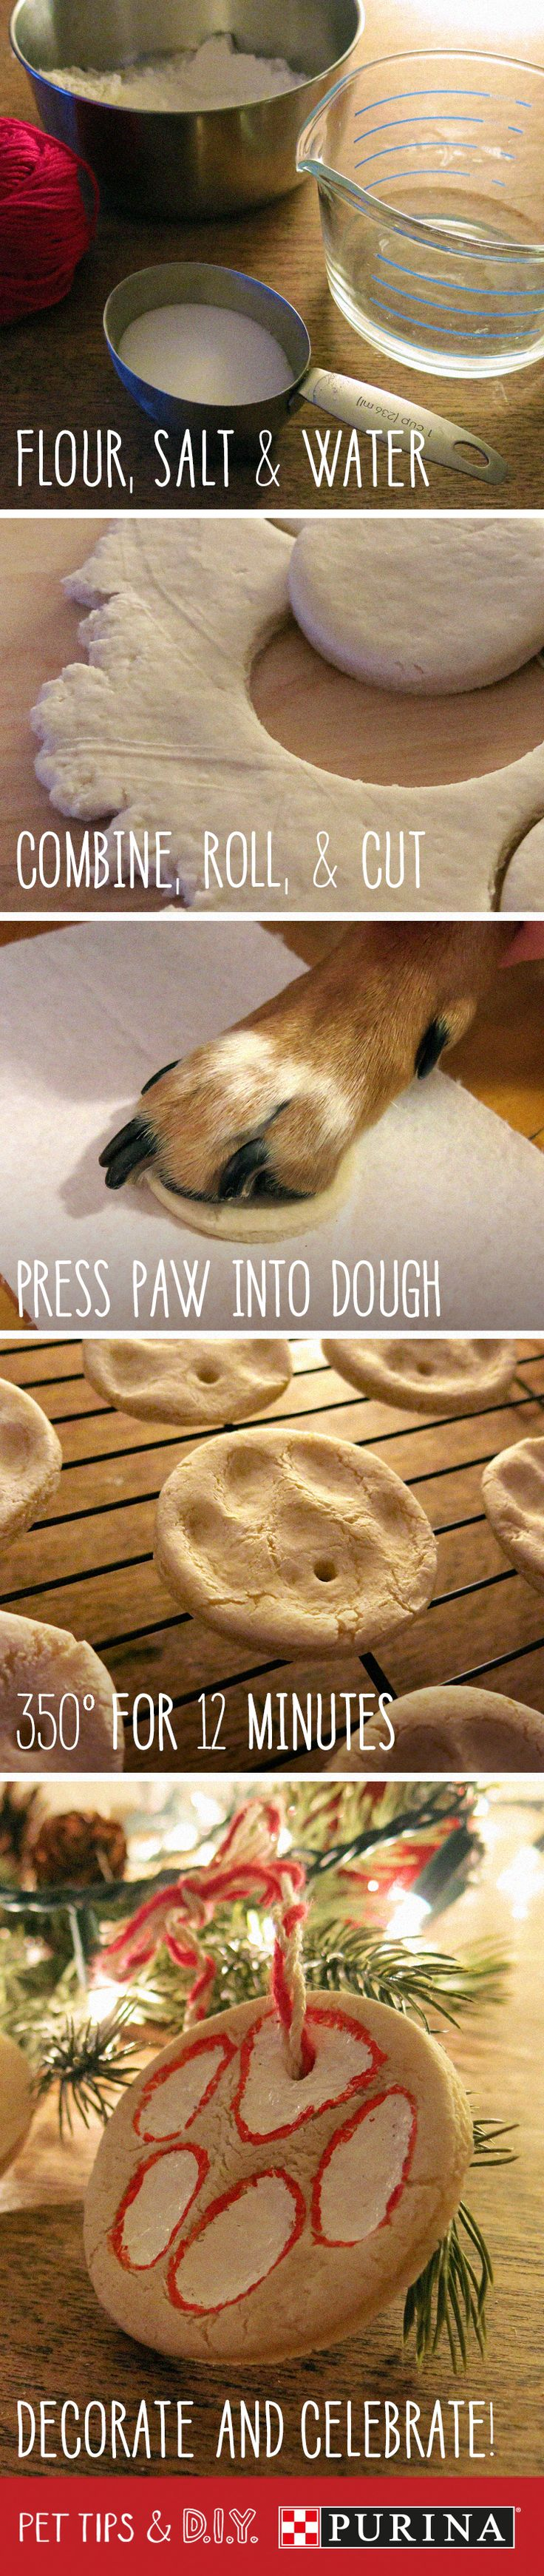 Make a DIY paw print ornament to celebrate the holiday season with your cat or d...